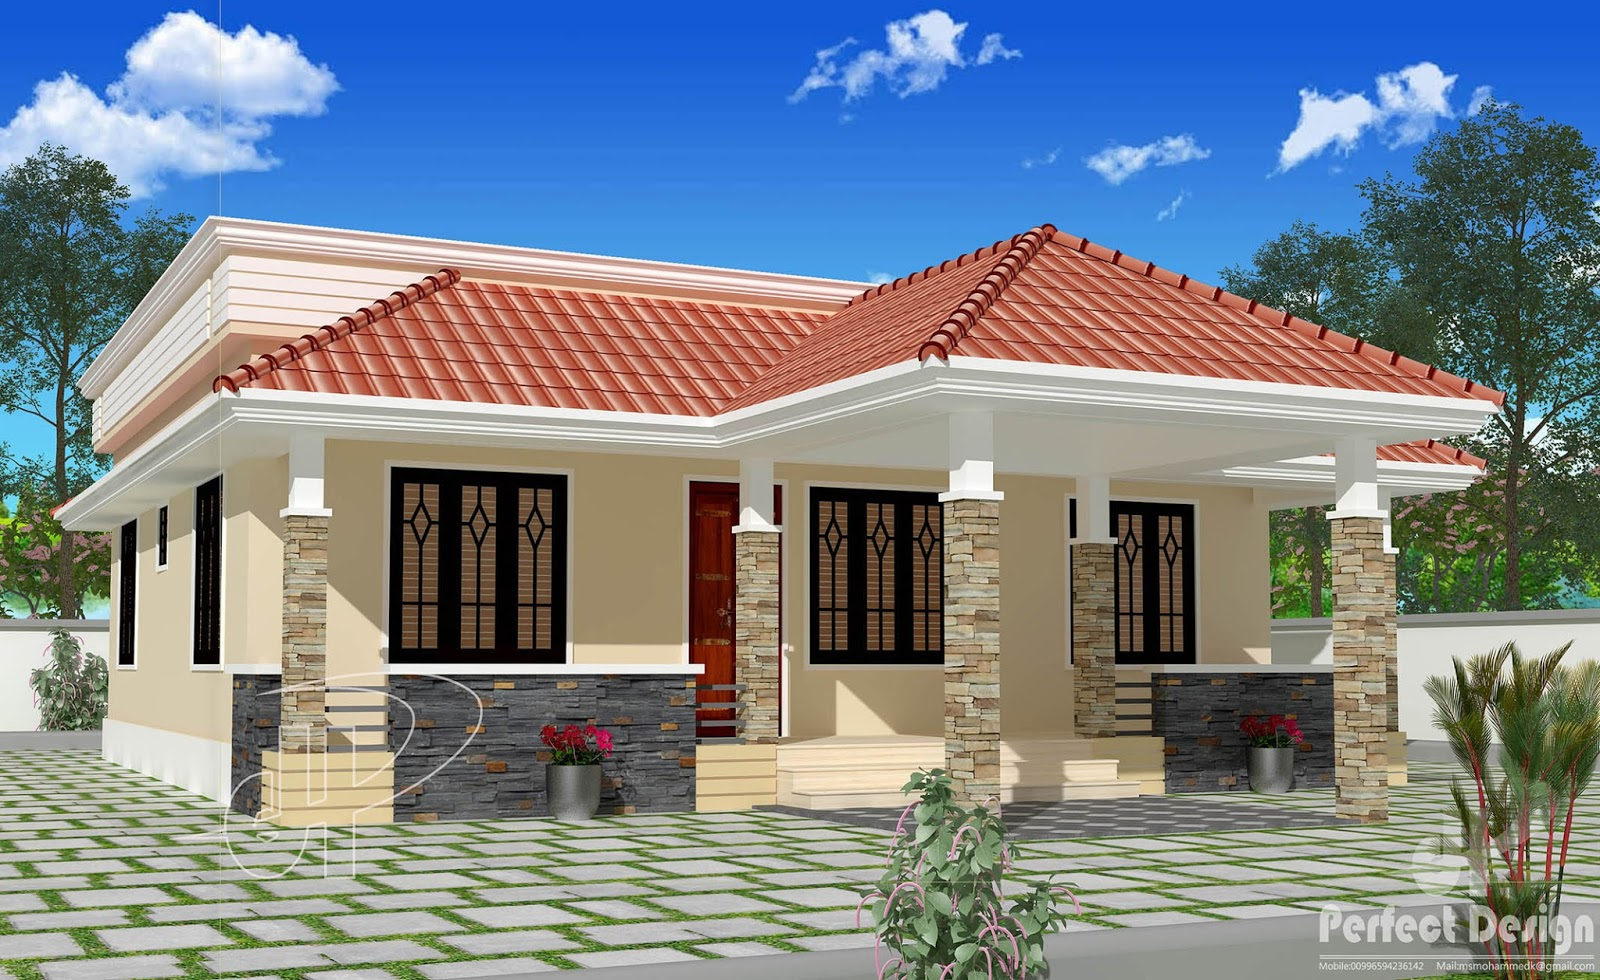 Build your dream one story home with these 12 beautiful One room house designs